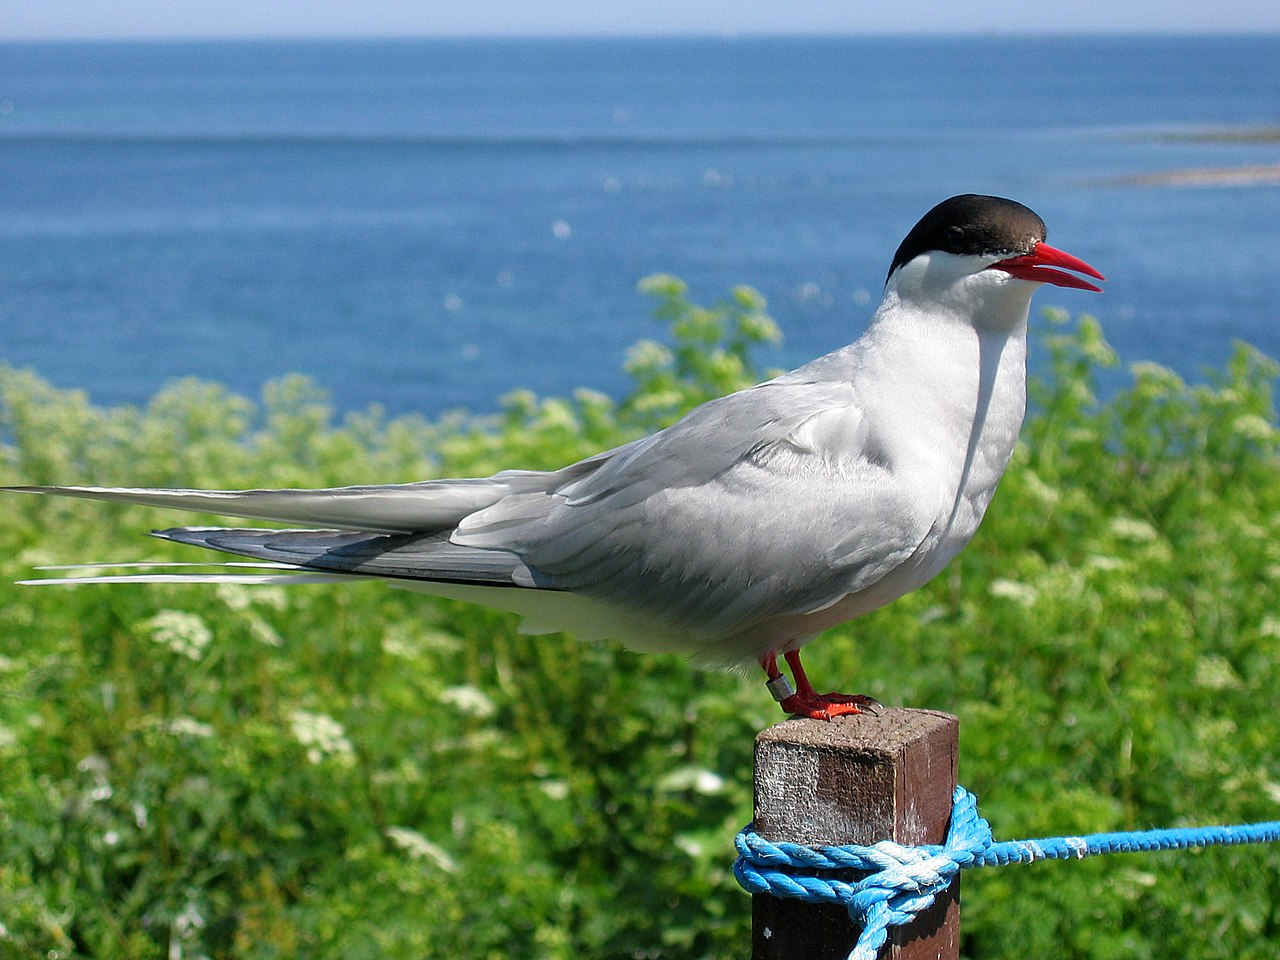 2009 07 02 - Arctic tern on Farne Islands - The blue rope demarcates the visitors' path.JPG